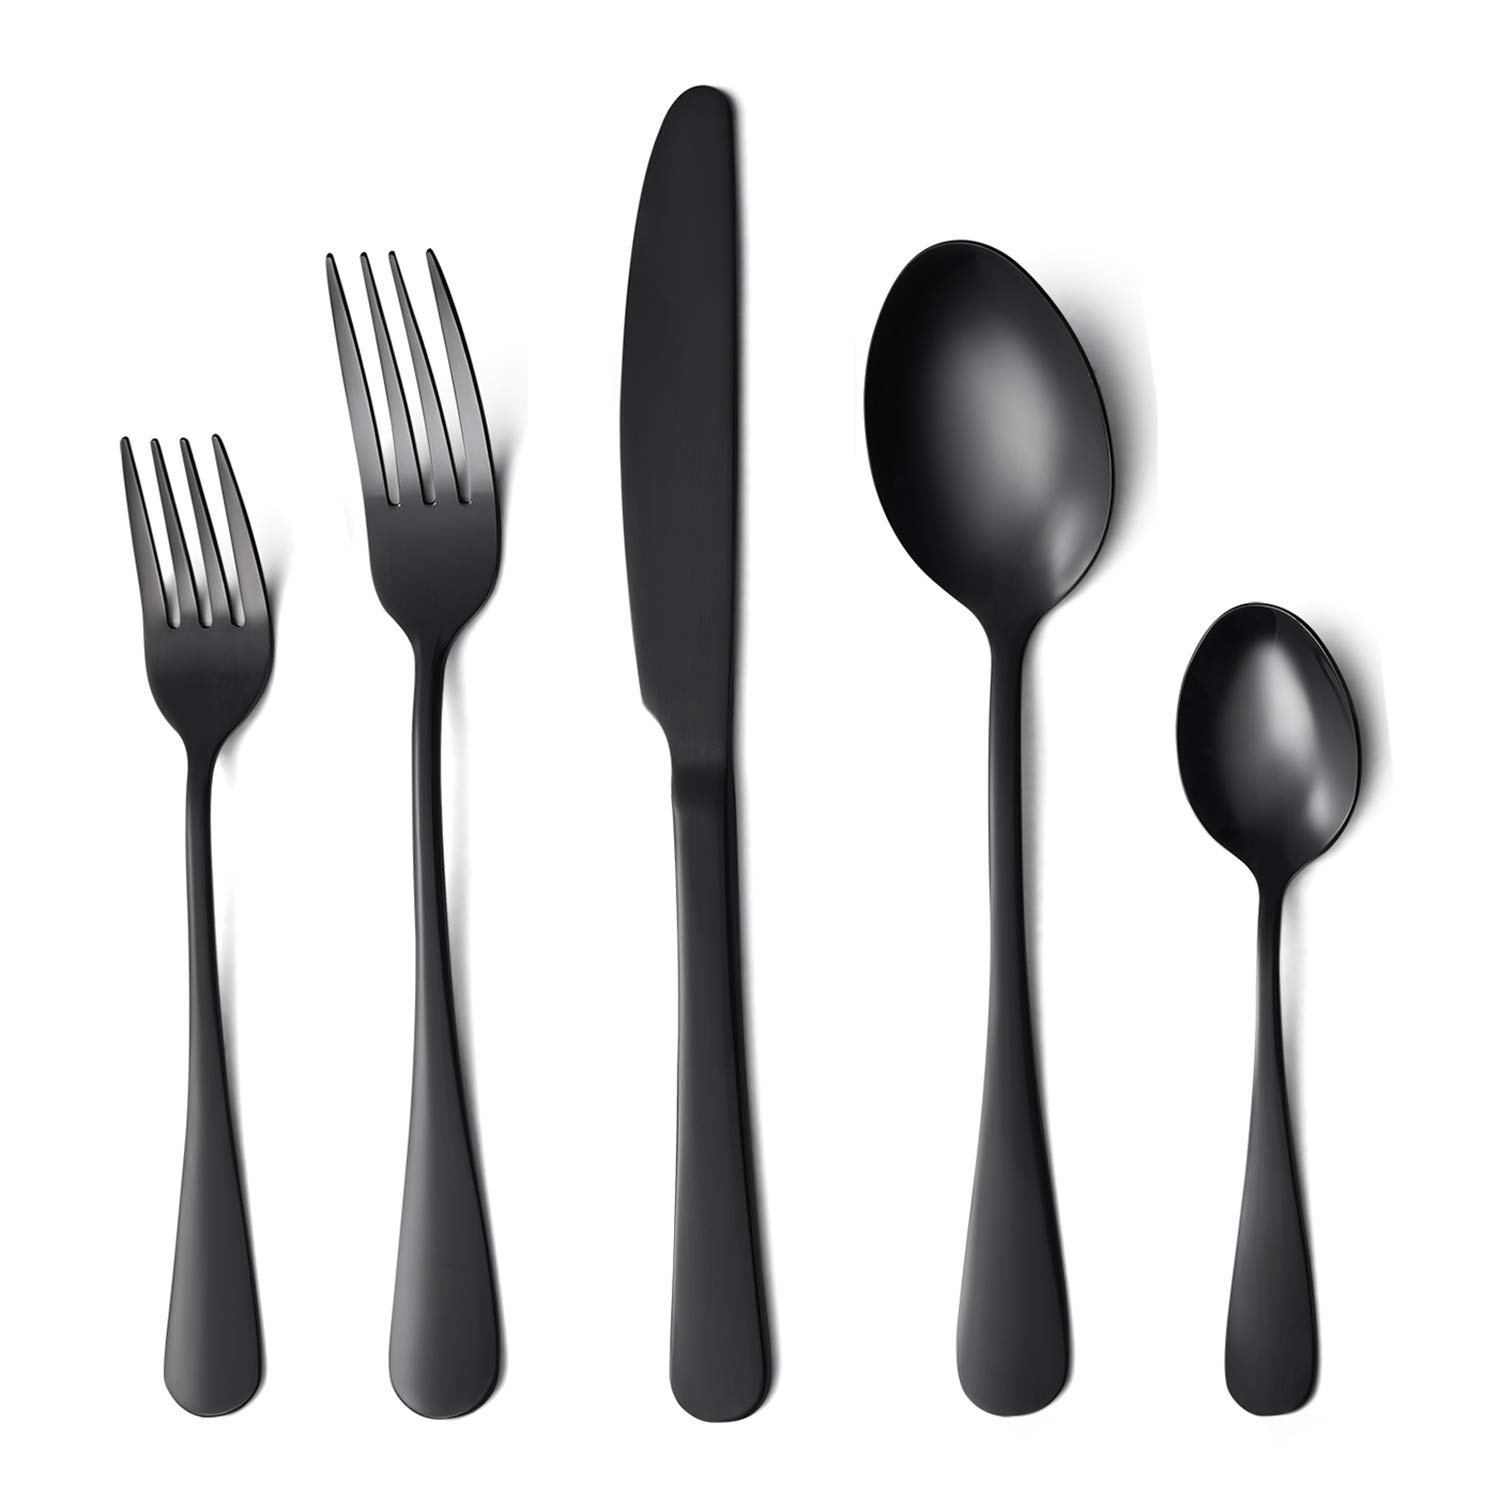 Flatware Set, 20-piece Silverware Cutlery Set with Serving Pieces, Heavy-duty Stainless Steel Utensils, Include Knife/Fork/Spoon, Mirror Finish, Dishwasher Safe, Service for 4 (Black) by HOMOGO